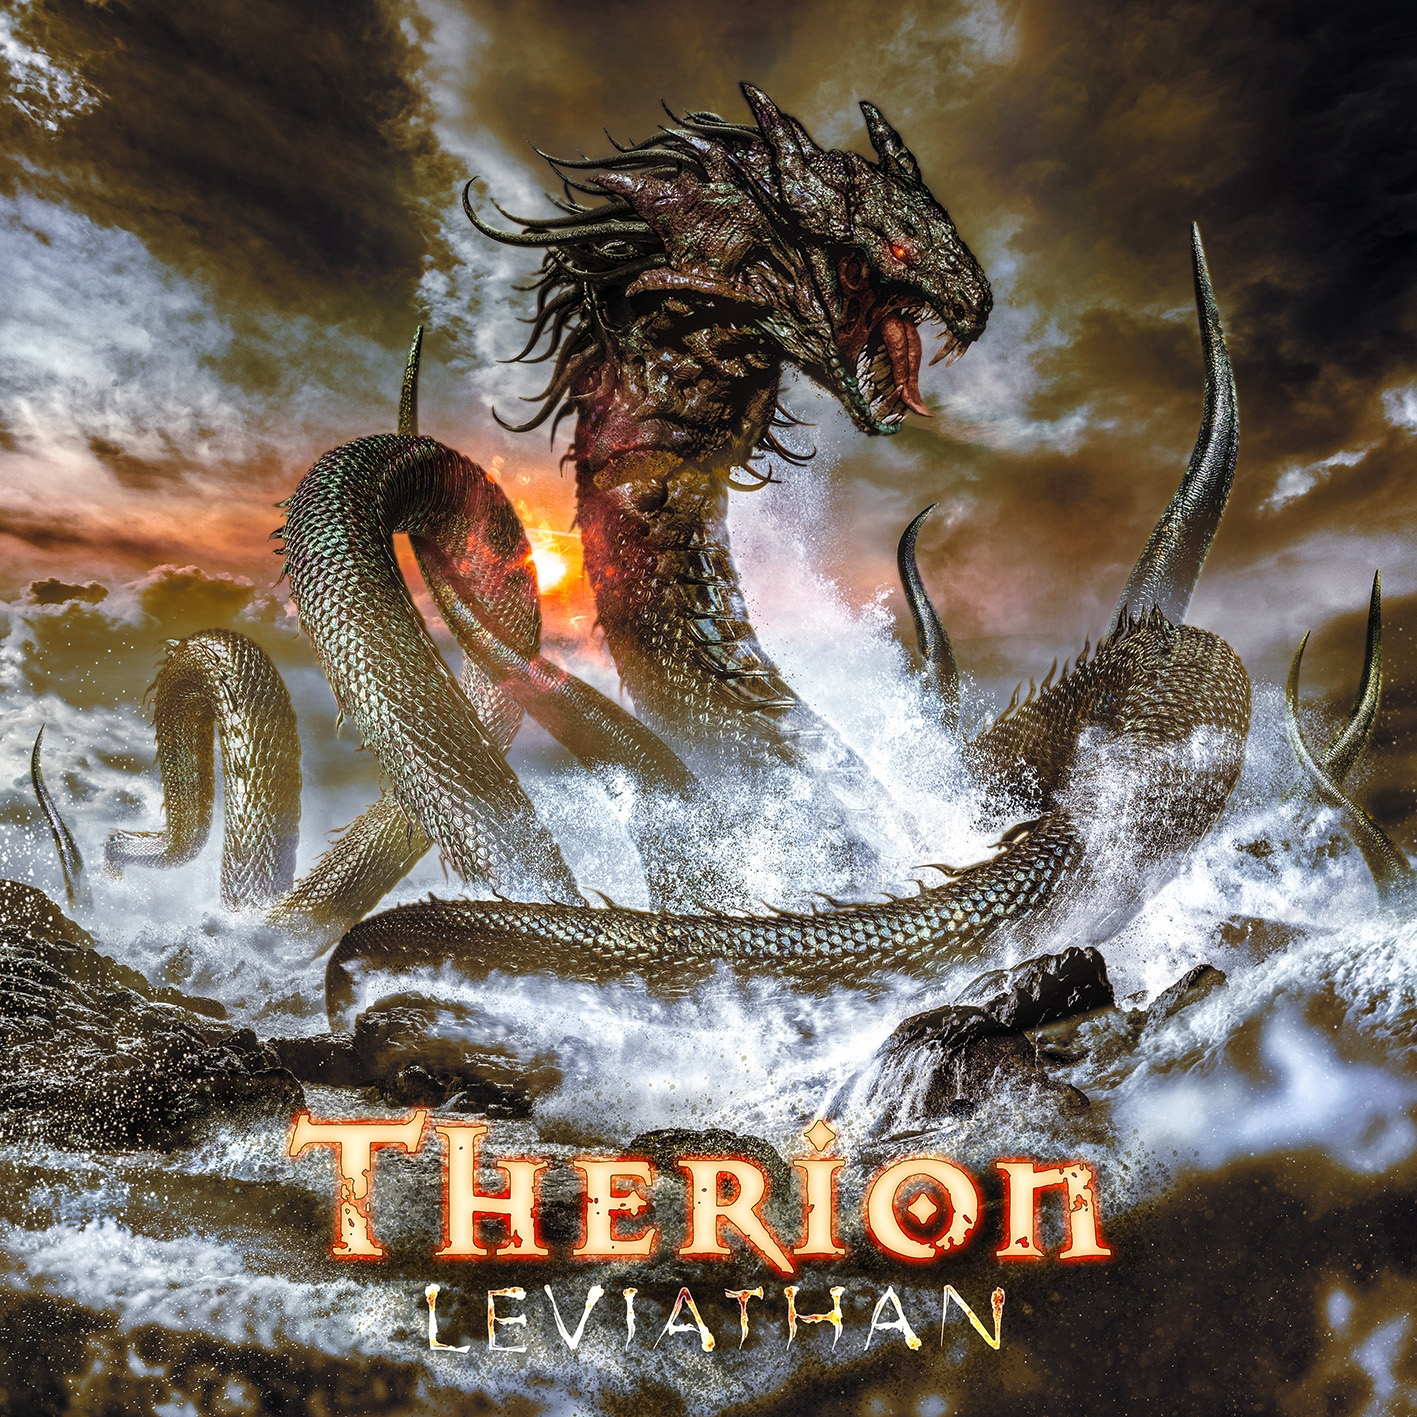 Review: Therion Leviathan